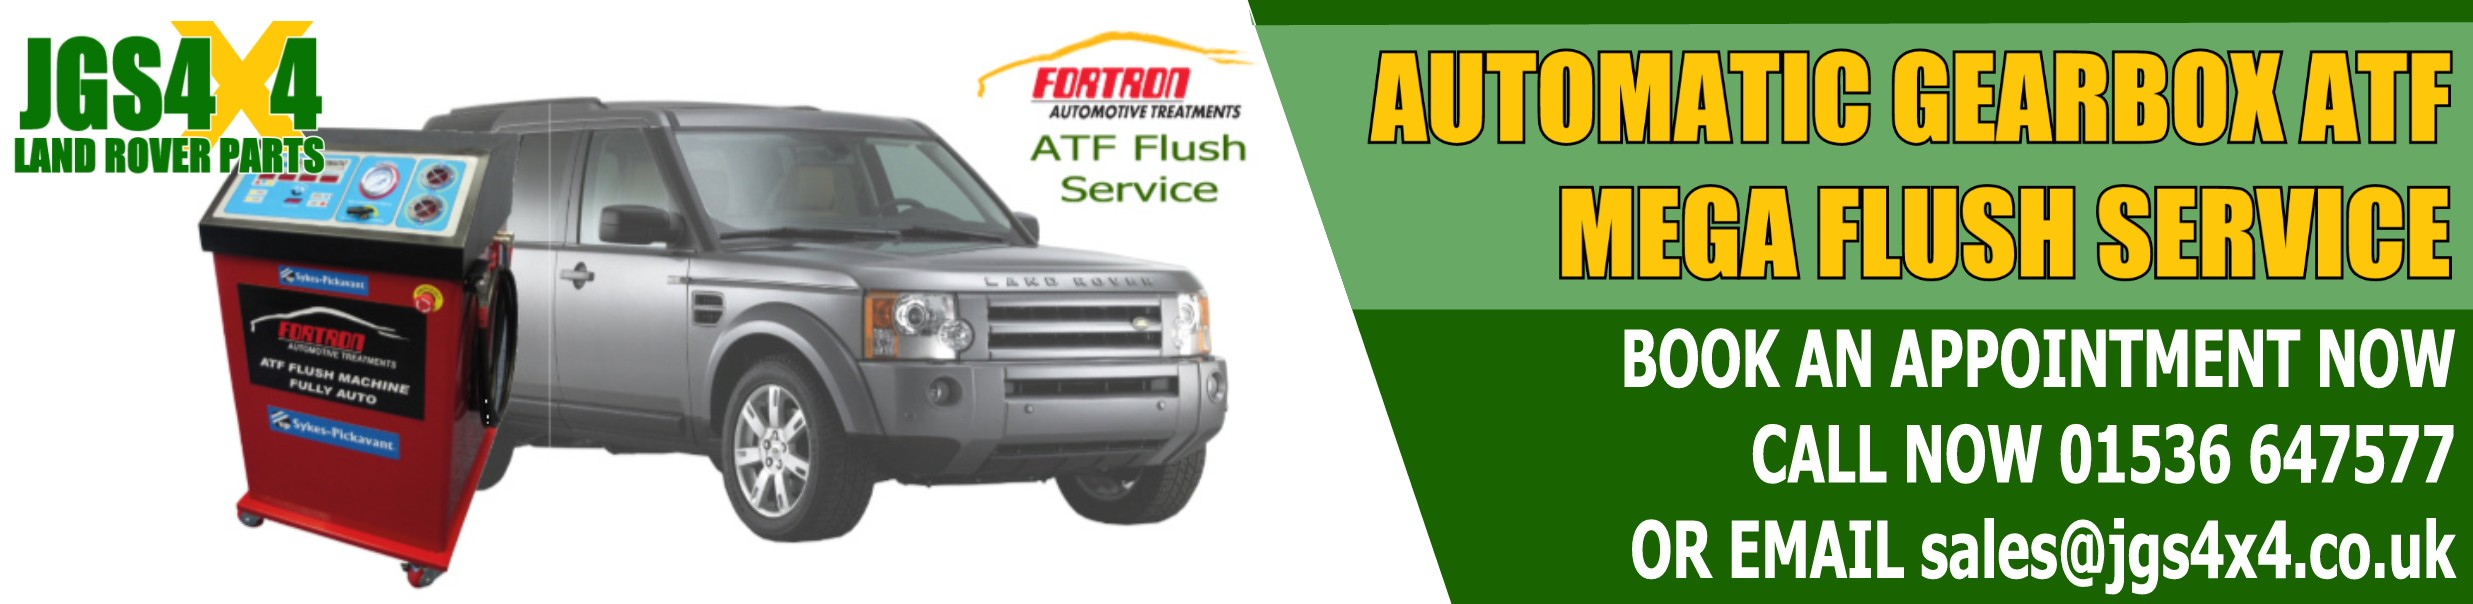 Automatic Gearbox ATF Mega Flush Service from JGS4X4